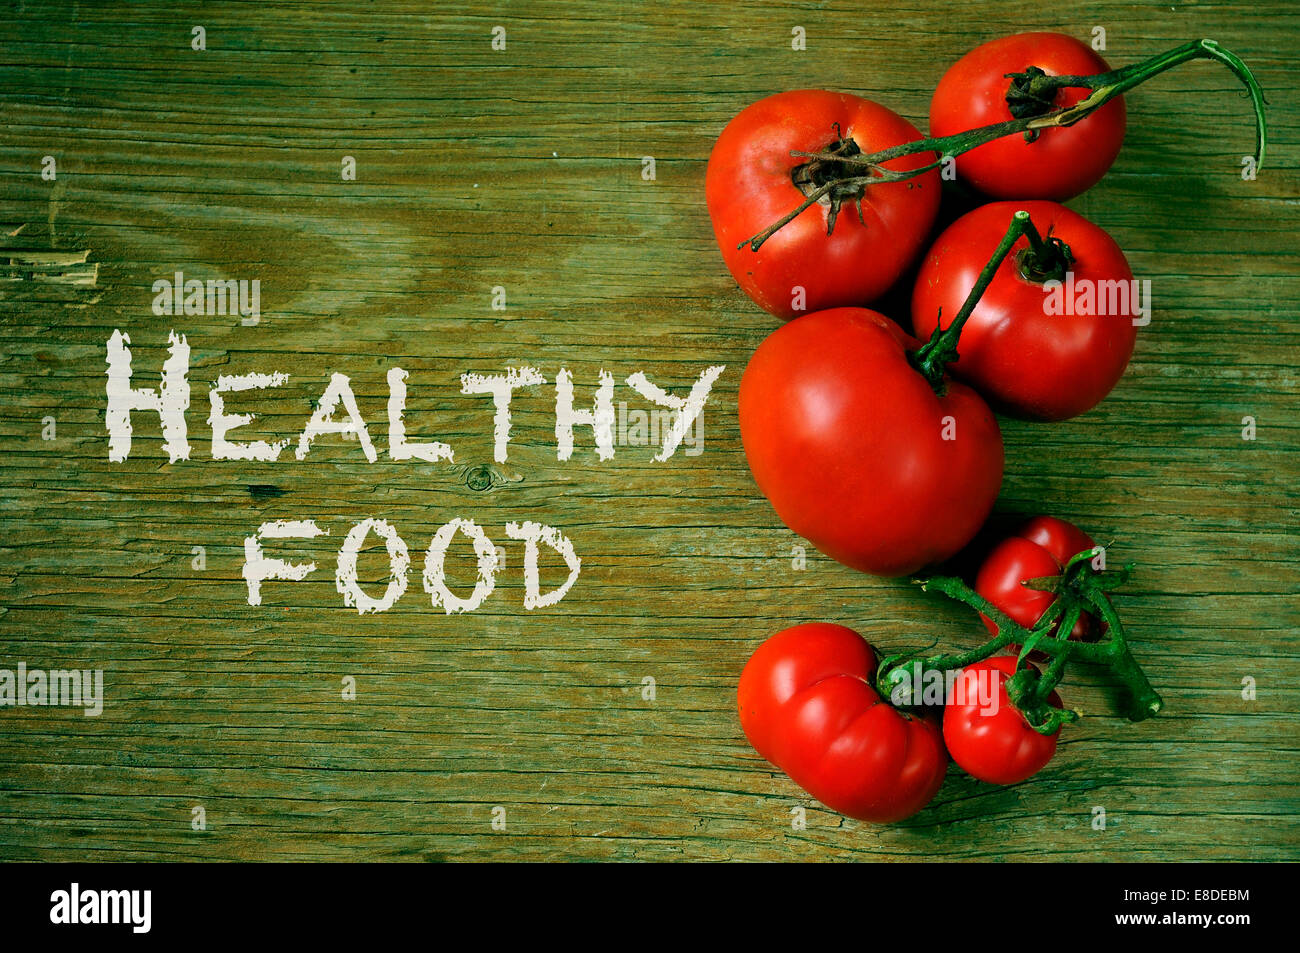 the text healthy food and a bunch of ripe tomatoes on a rustic wooden table - Stock Image